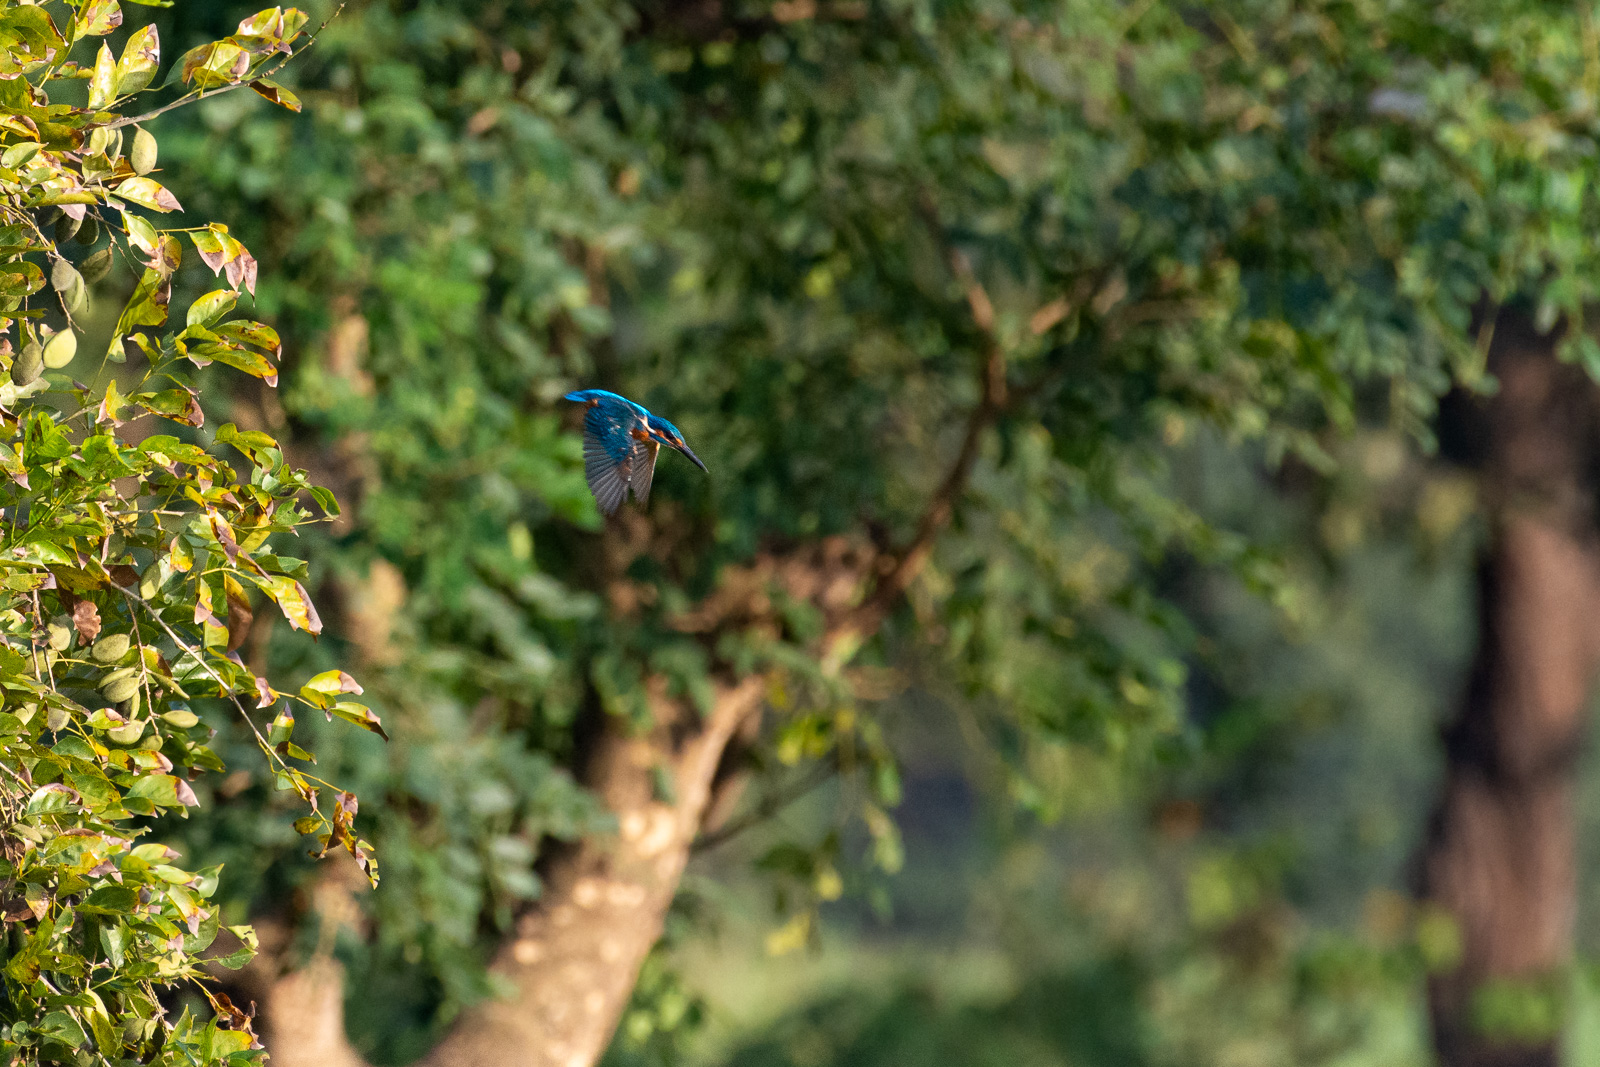 Image: Average focus performance when photographing small objects such as a flying kingfisher at a d...